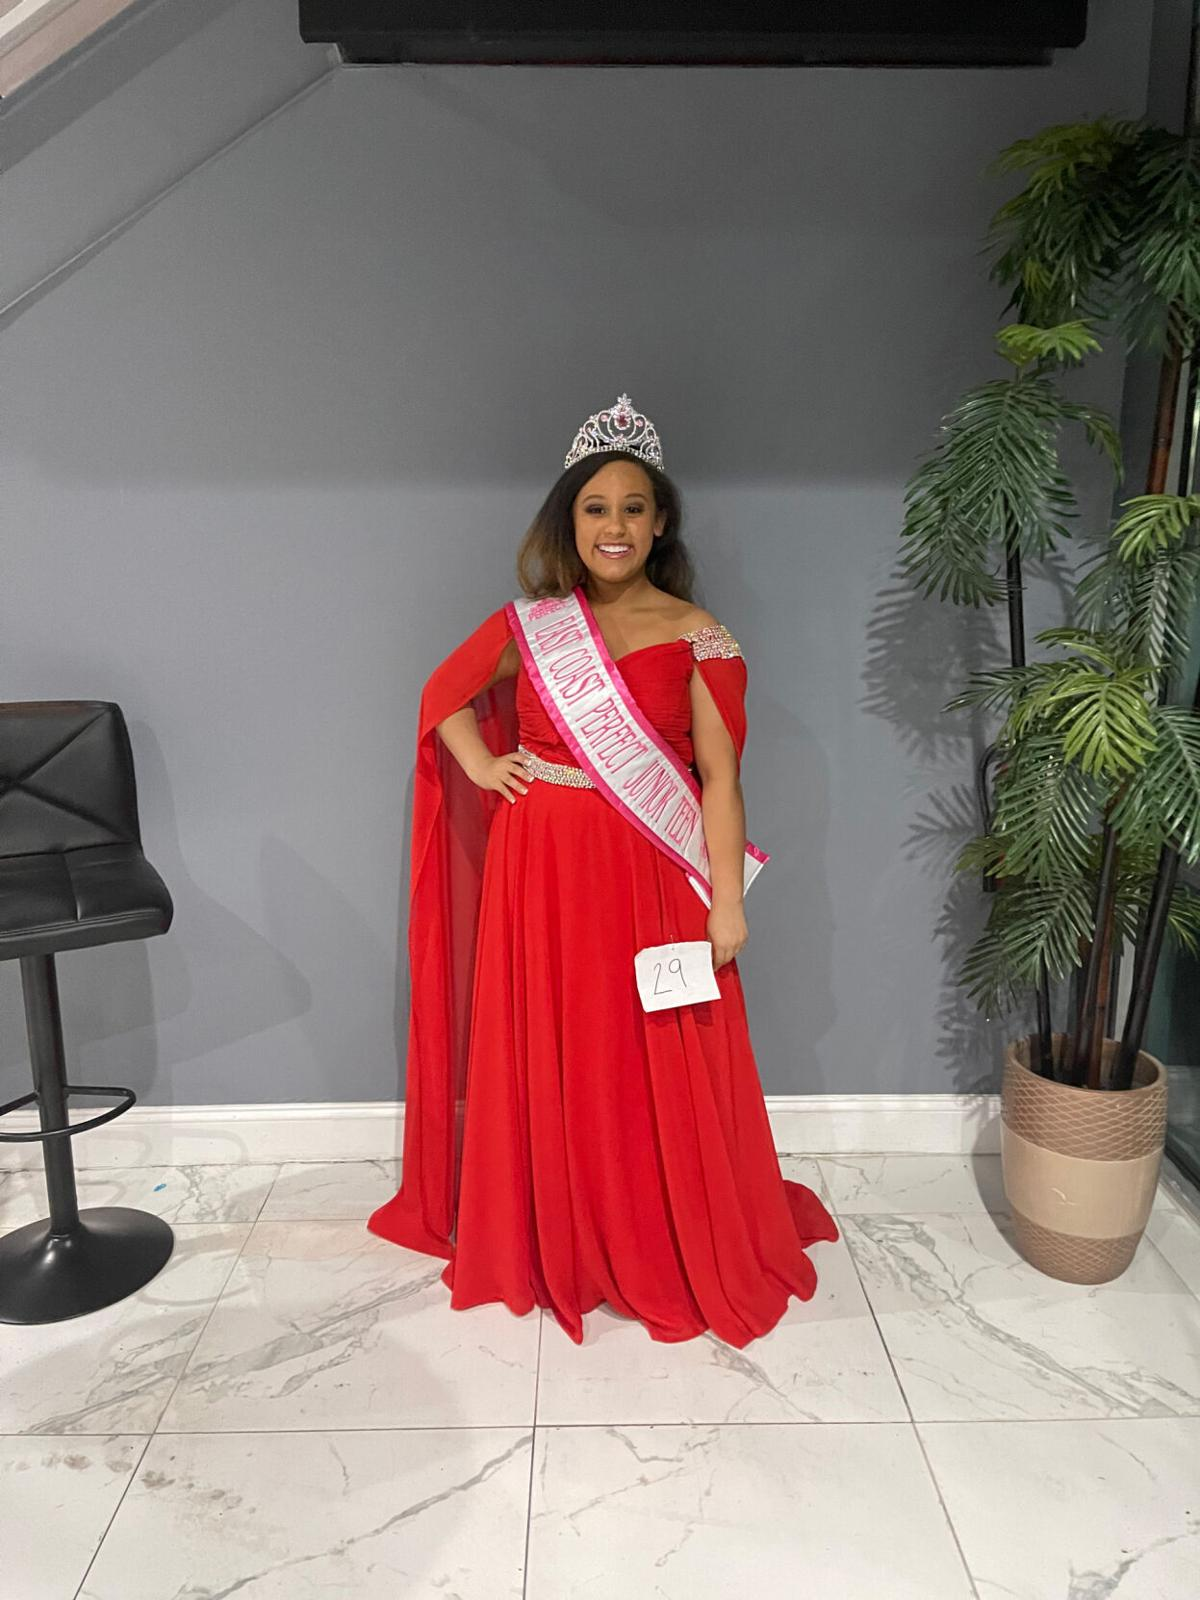 Appomattox teen wins east pageant: Advances to international contest